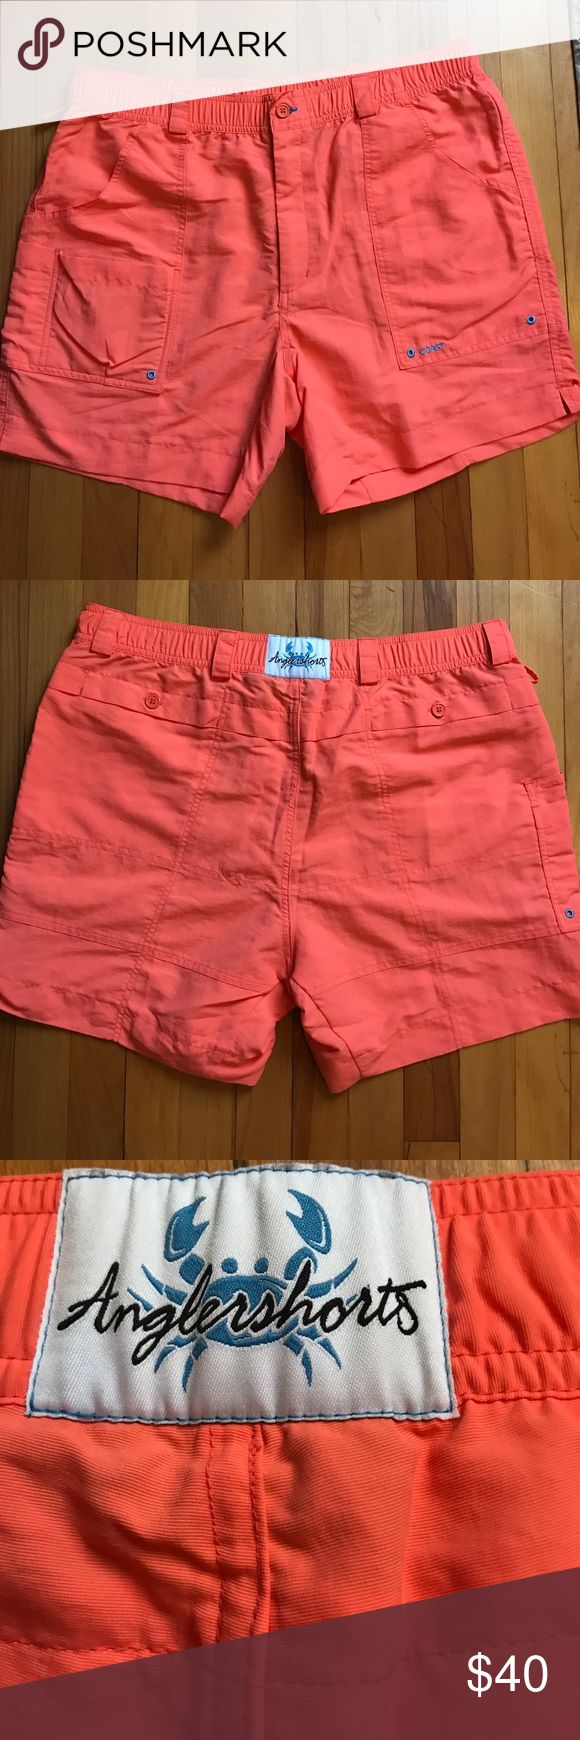 "Coast ""angler"" shorts new without tags! can be worn as bathing suit or regular shorts. bright orange color. Coast Shorts"